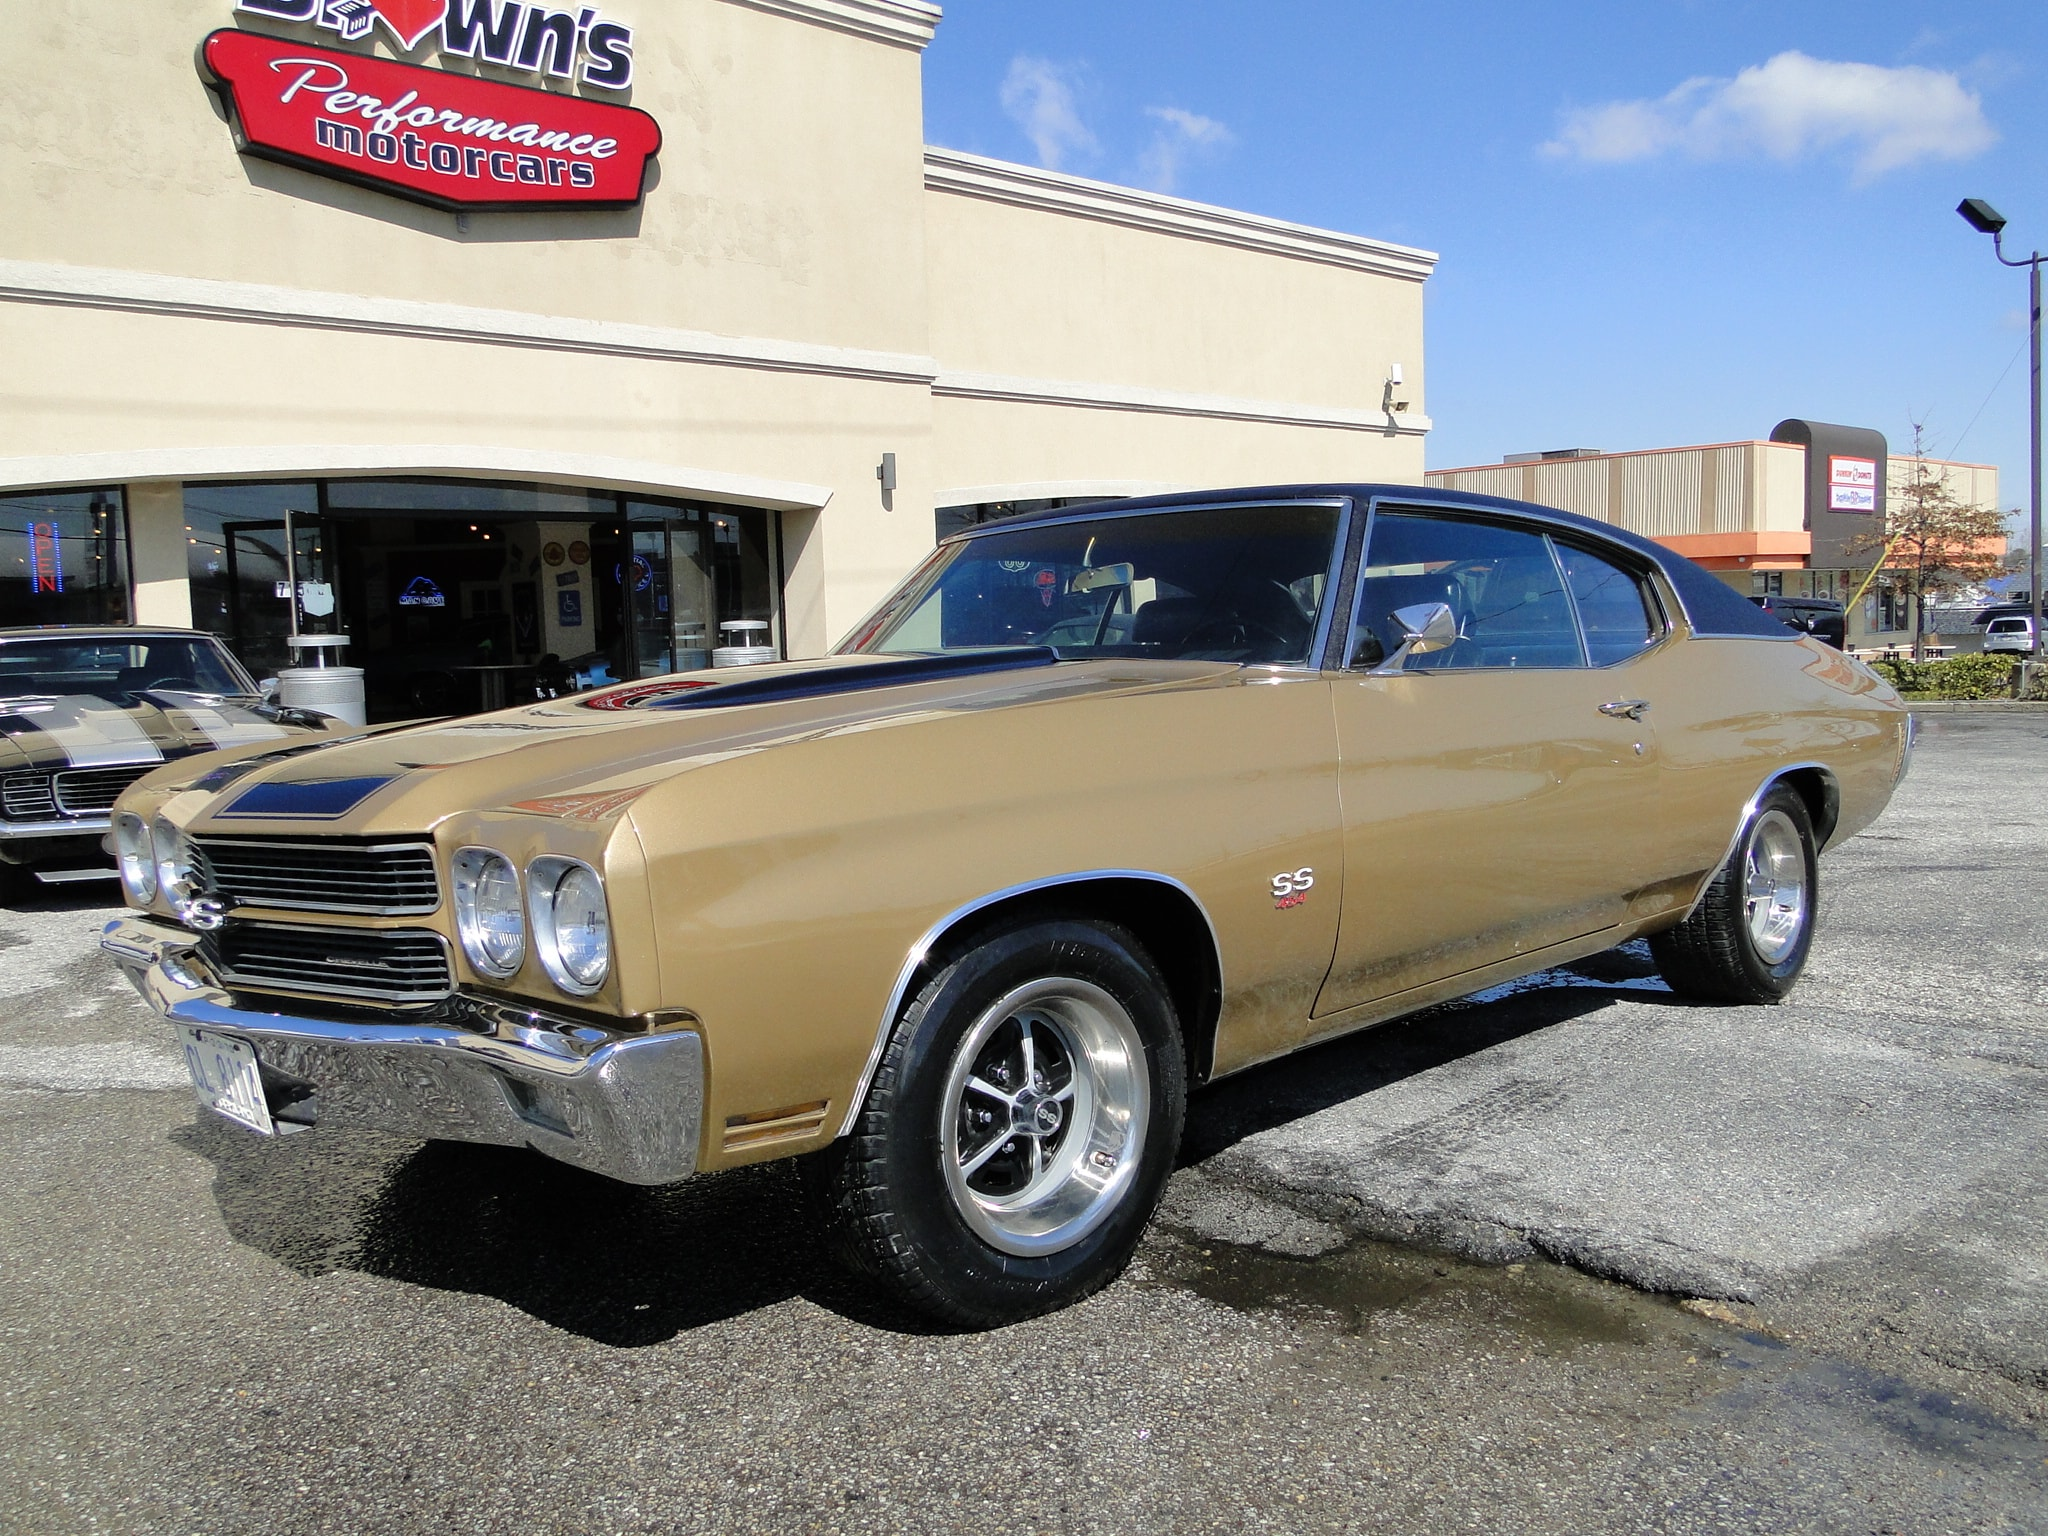 70 chevelle for sale cheap autos post 1970 chevelle ss for sale